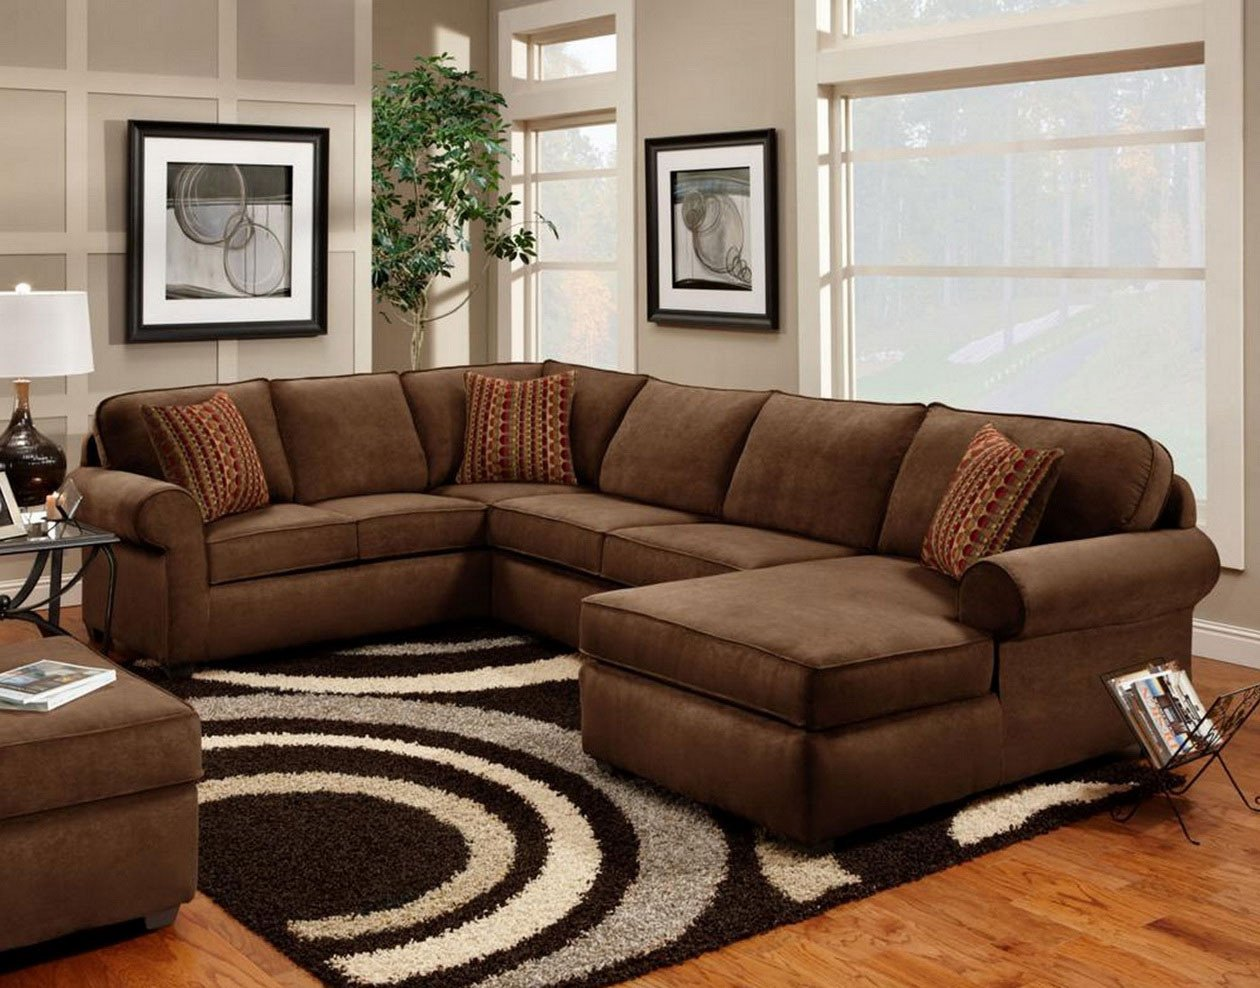 Comfortable Couches Living Room Beautiful Tips to Purchase the Best fortable Couches Decorating Ideas